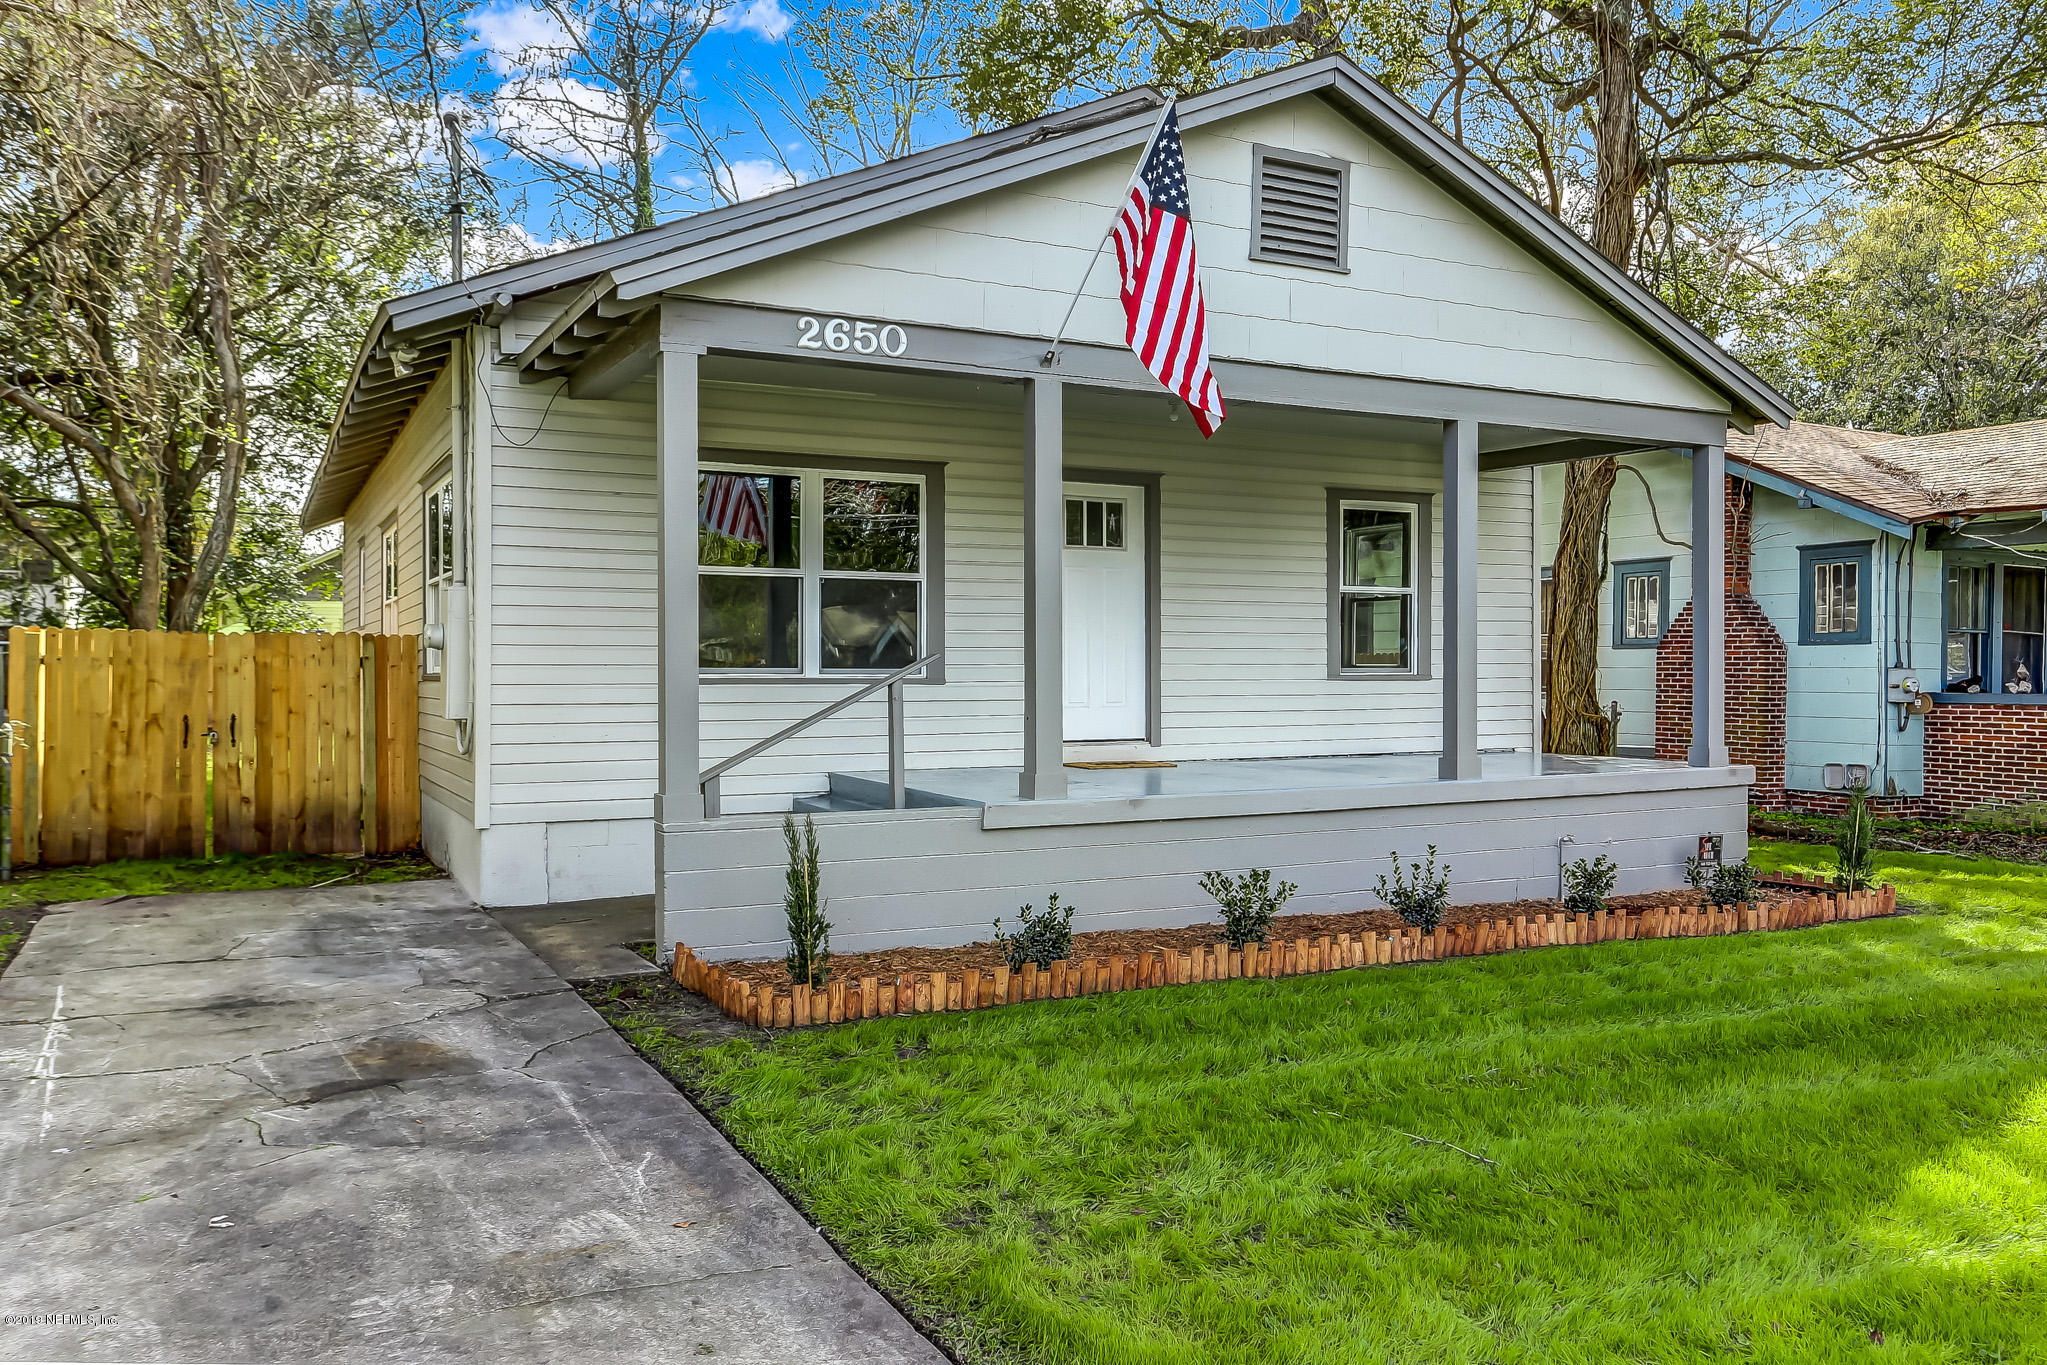 2650 GREEN, JACKSONVILLE, FLORIDA 32204, 3 Bedrooms Bedrooms, ,1 BathroomBathrooms,Residential - single family,For sale,GREEN,979813